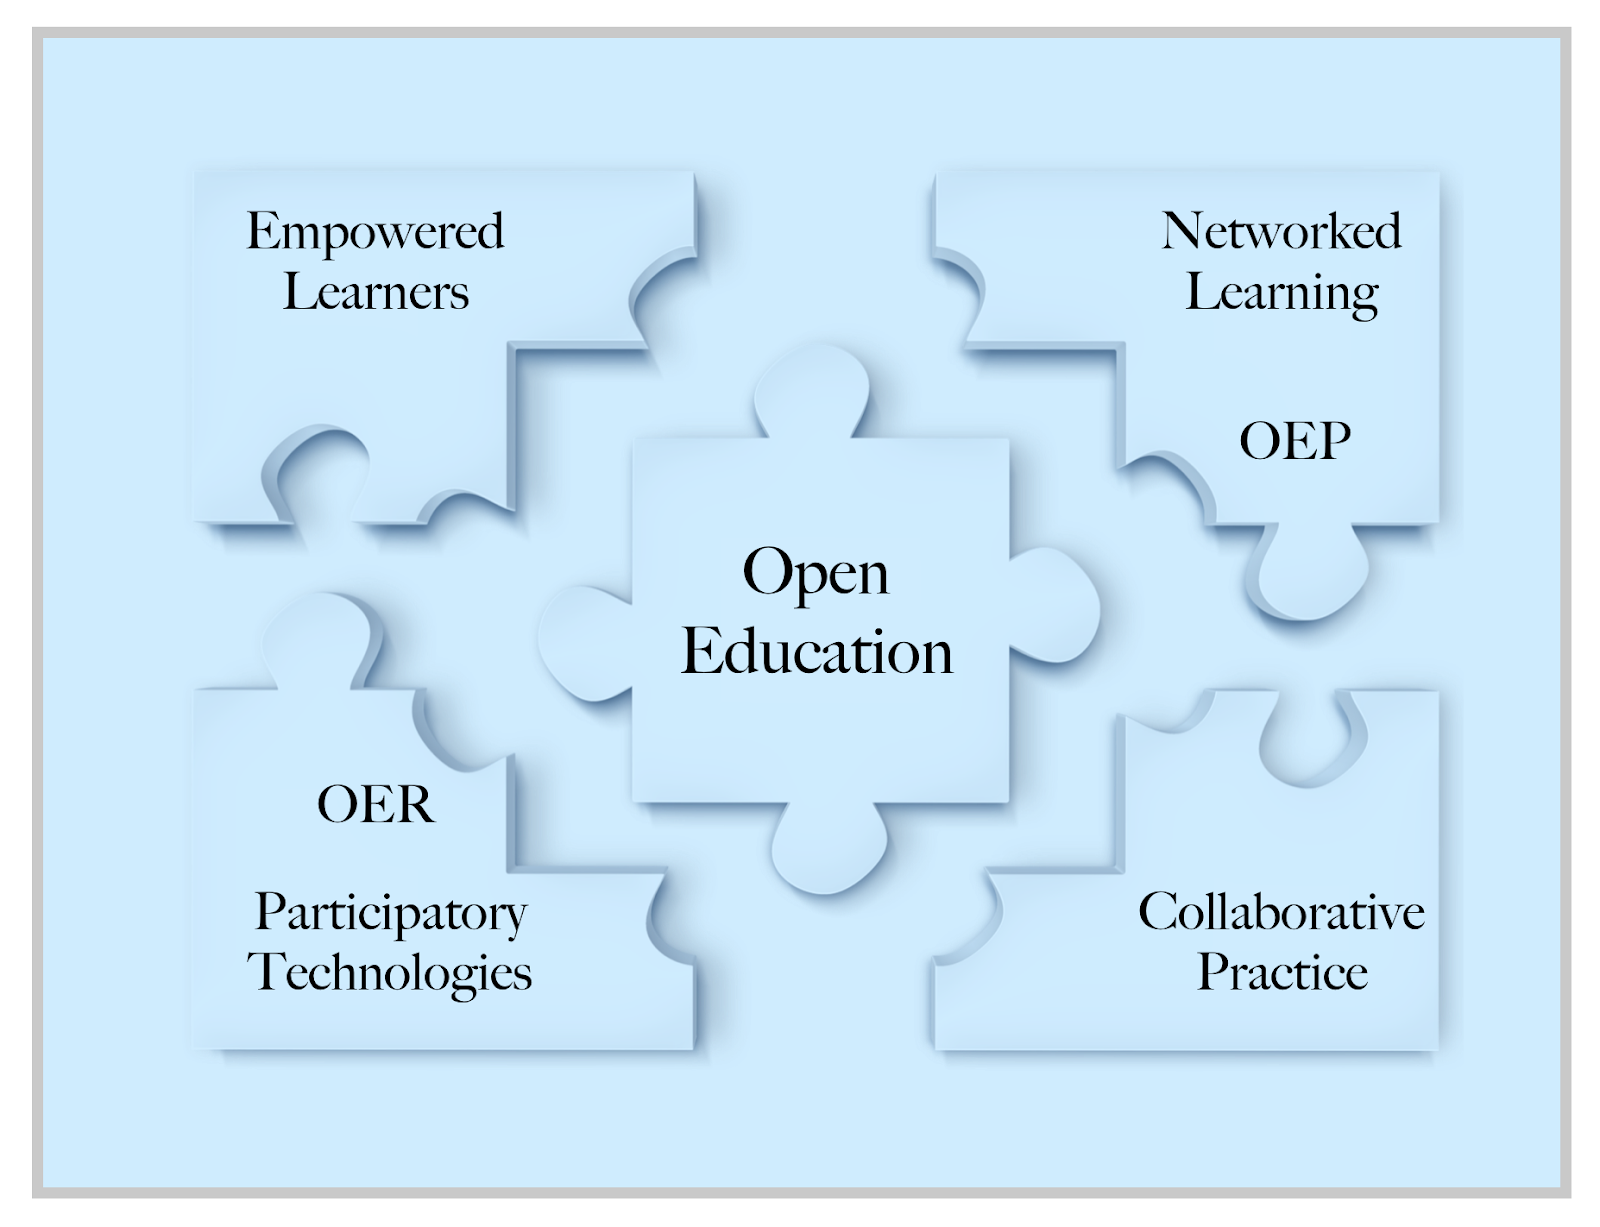 illustration of multiple puzzle pieces with open education at the centre and networked learning, rep, empowered learners, oer, participatory technologies, and collaborative practice written on the remaining puzzle pieces